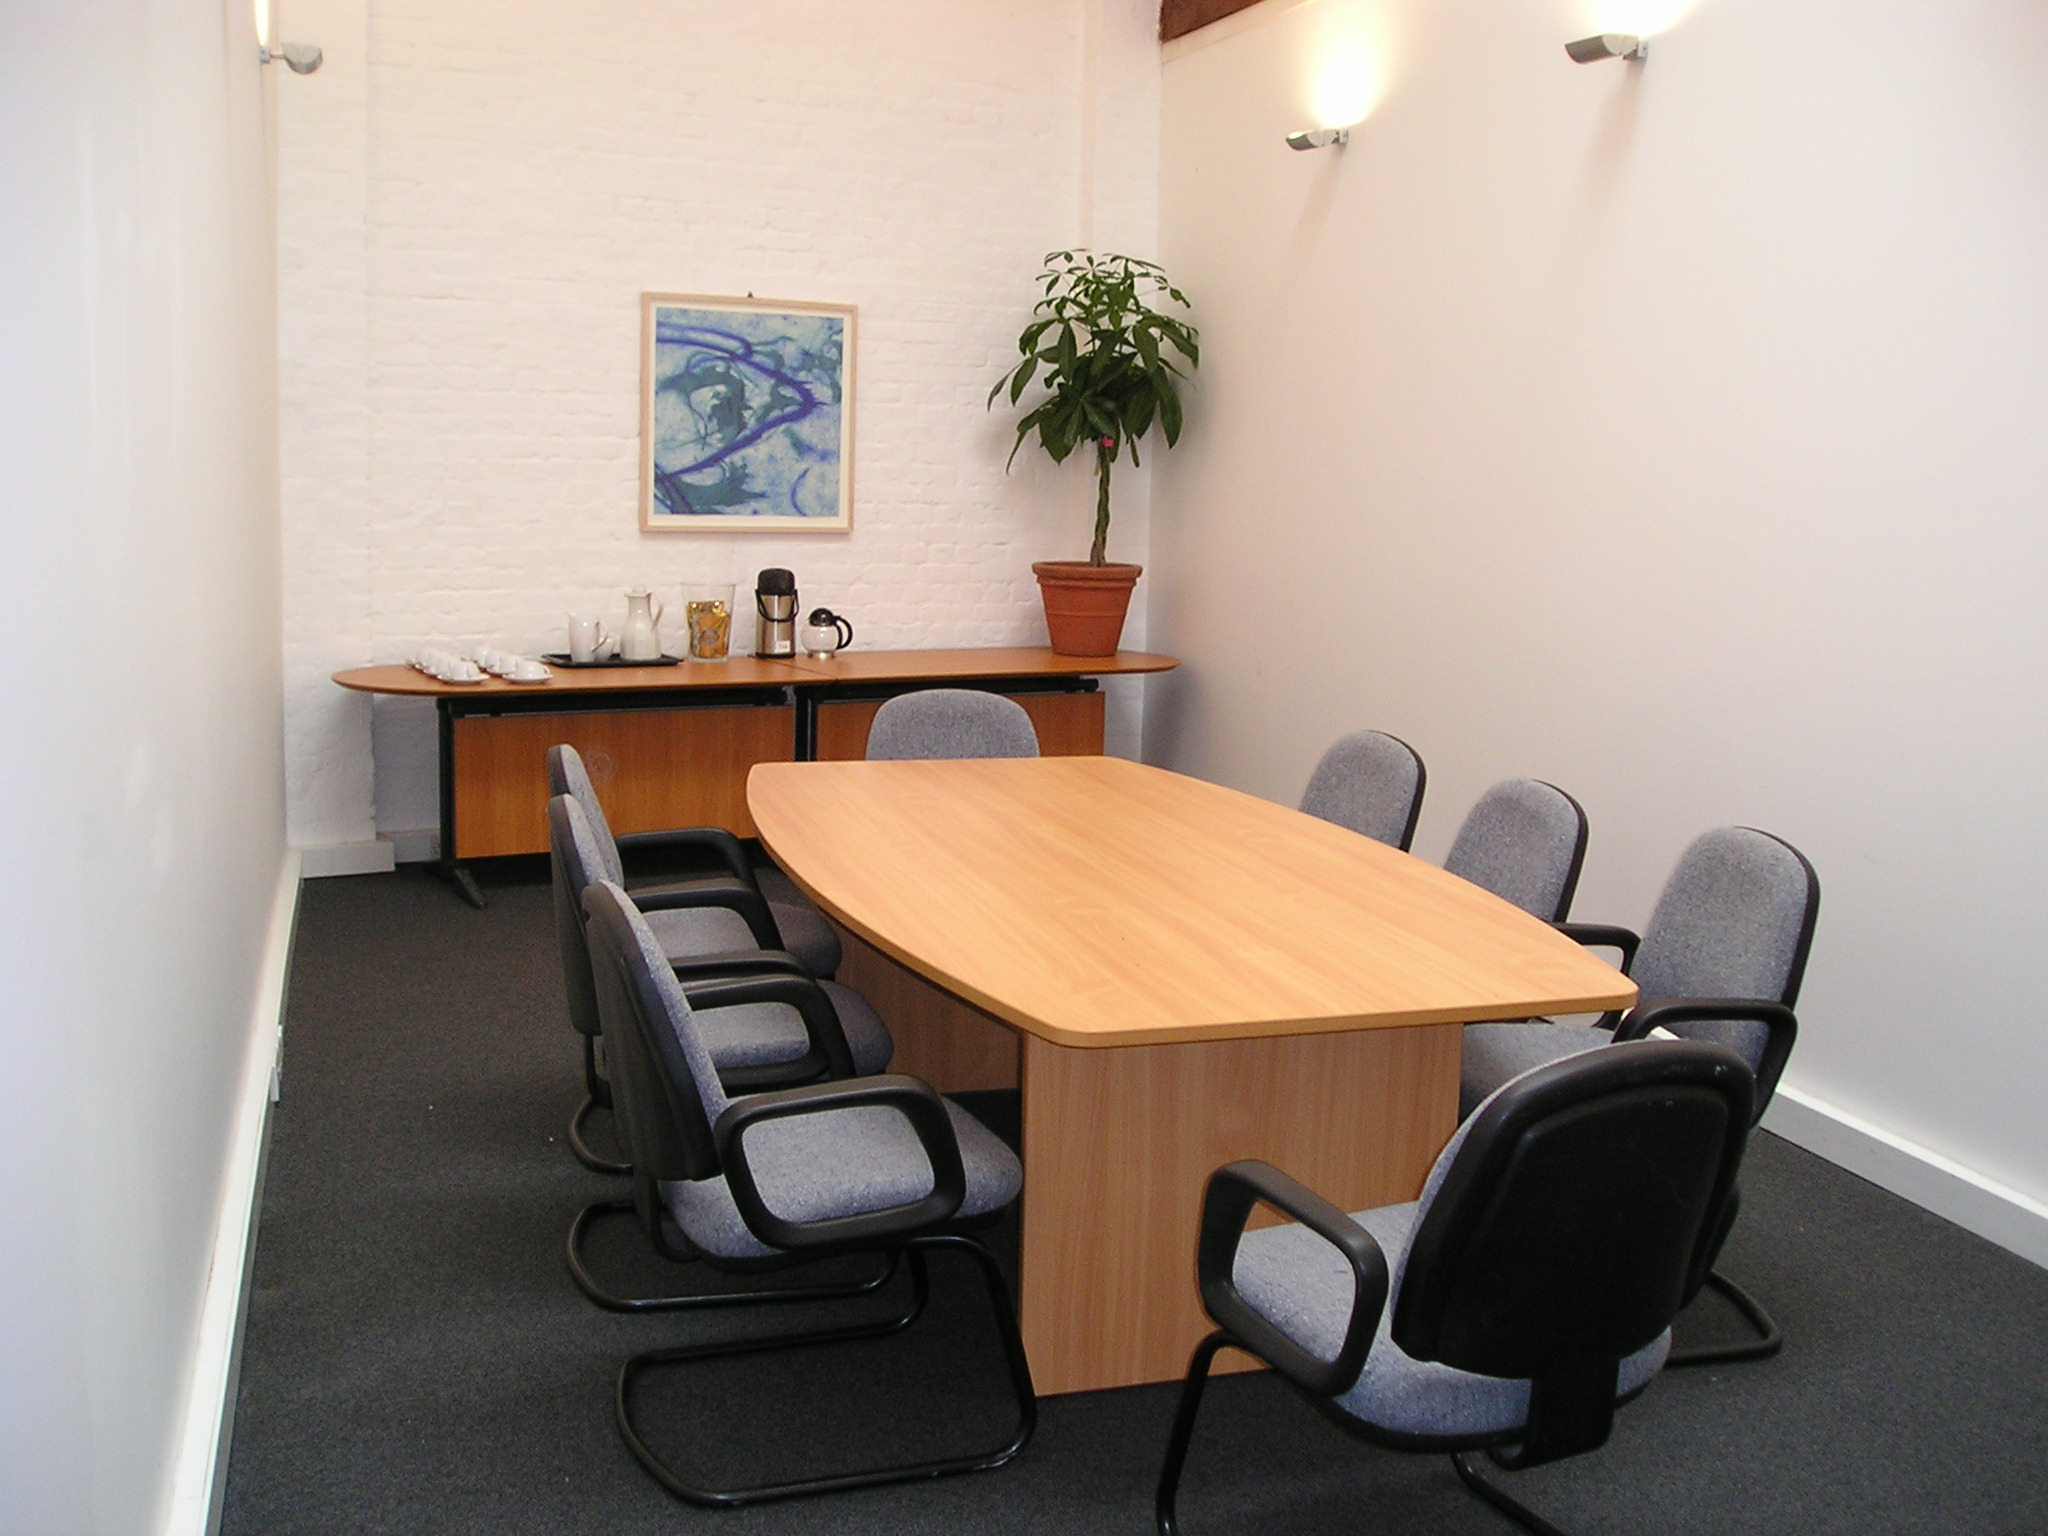 Meeting Room at Camberwell Business Centre, 99-103 Lomond Grove, Camberwell, London SE5 - Bizspace